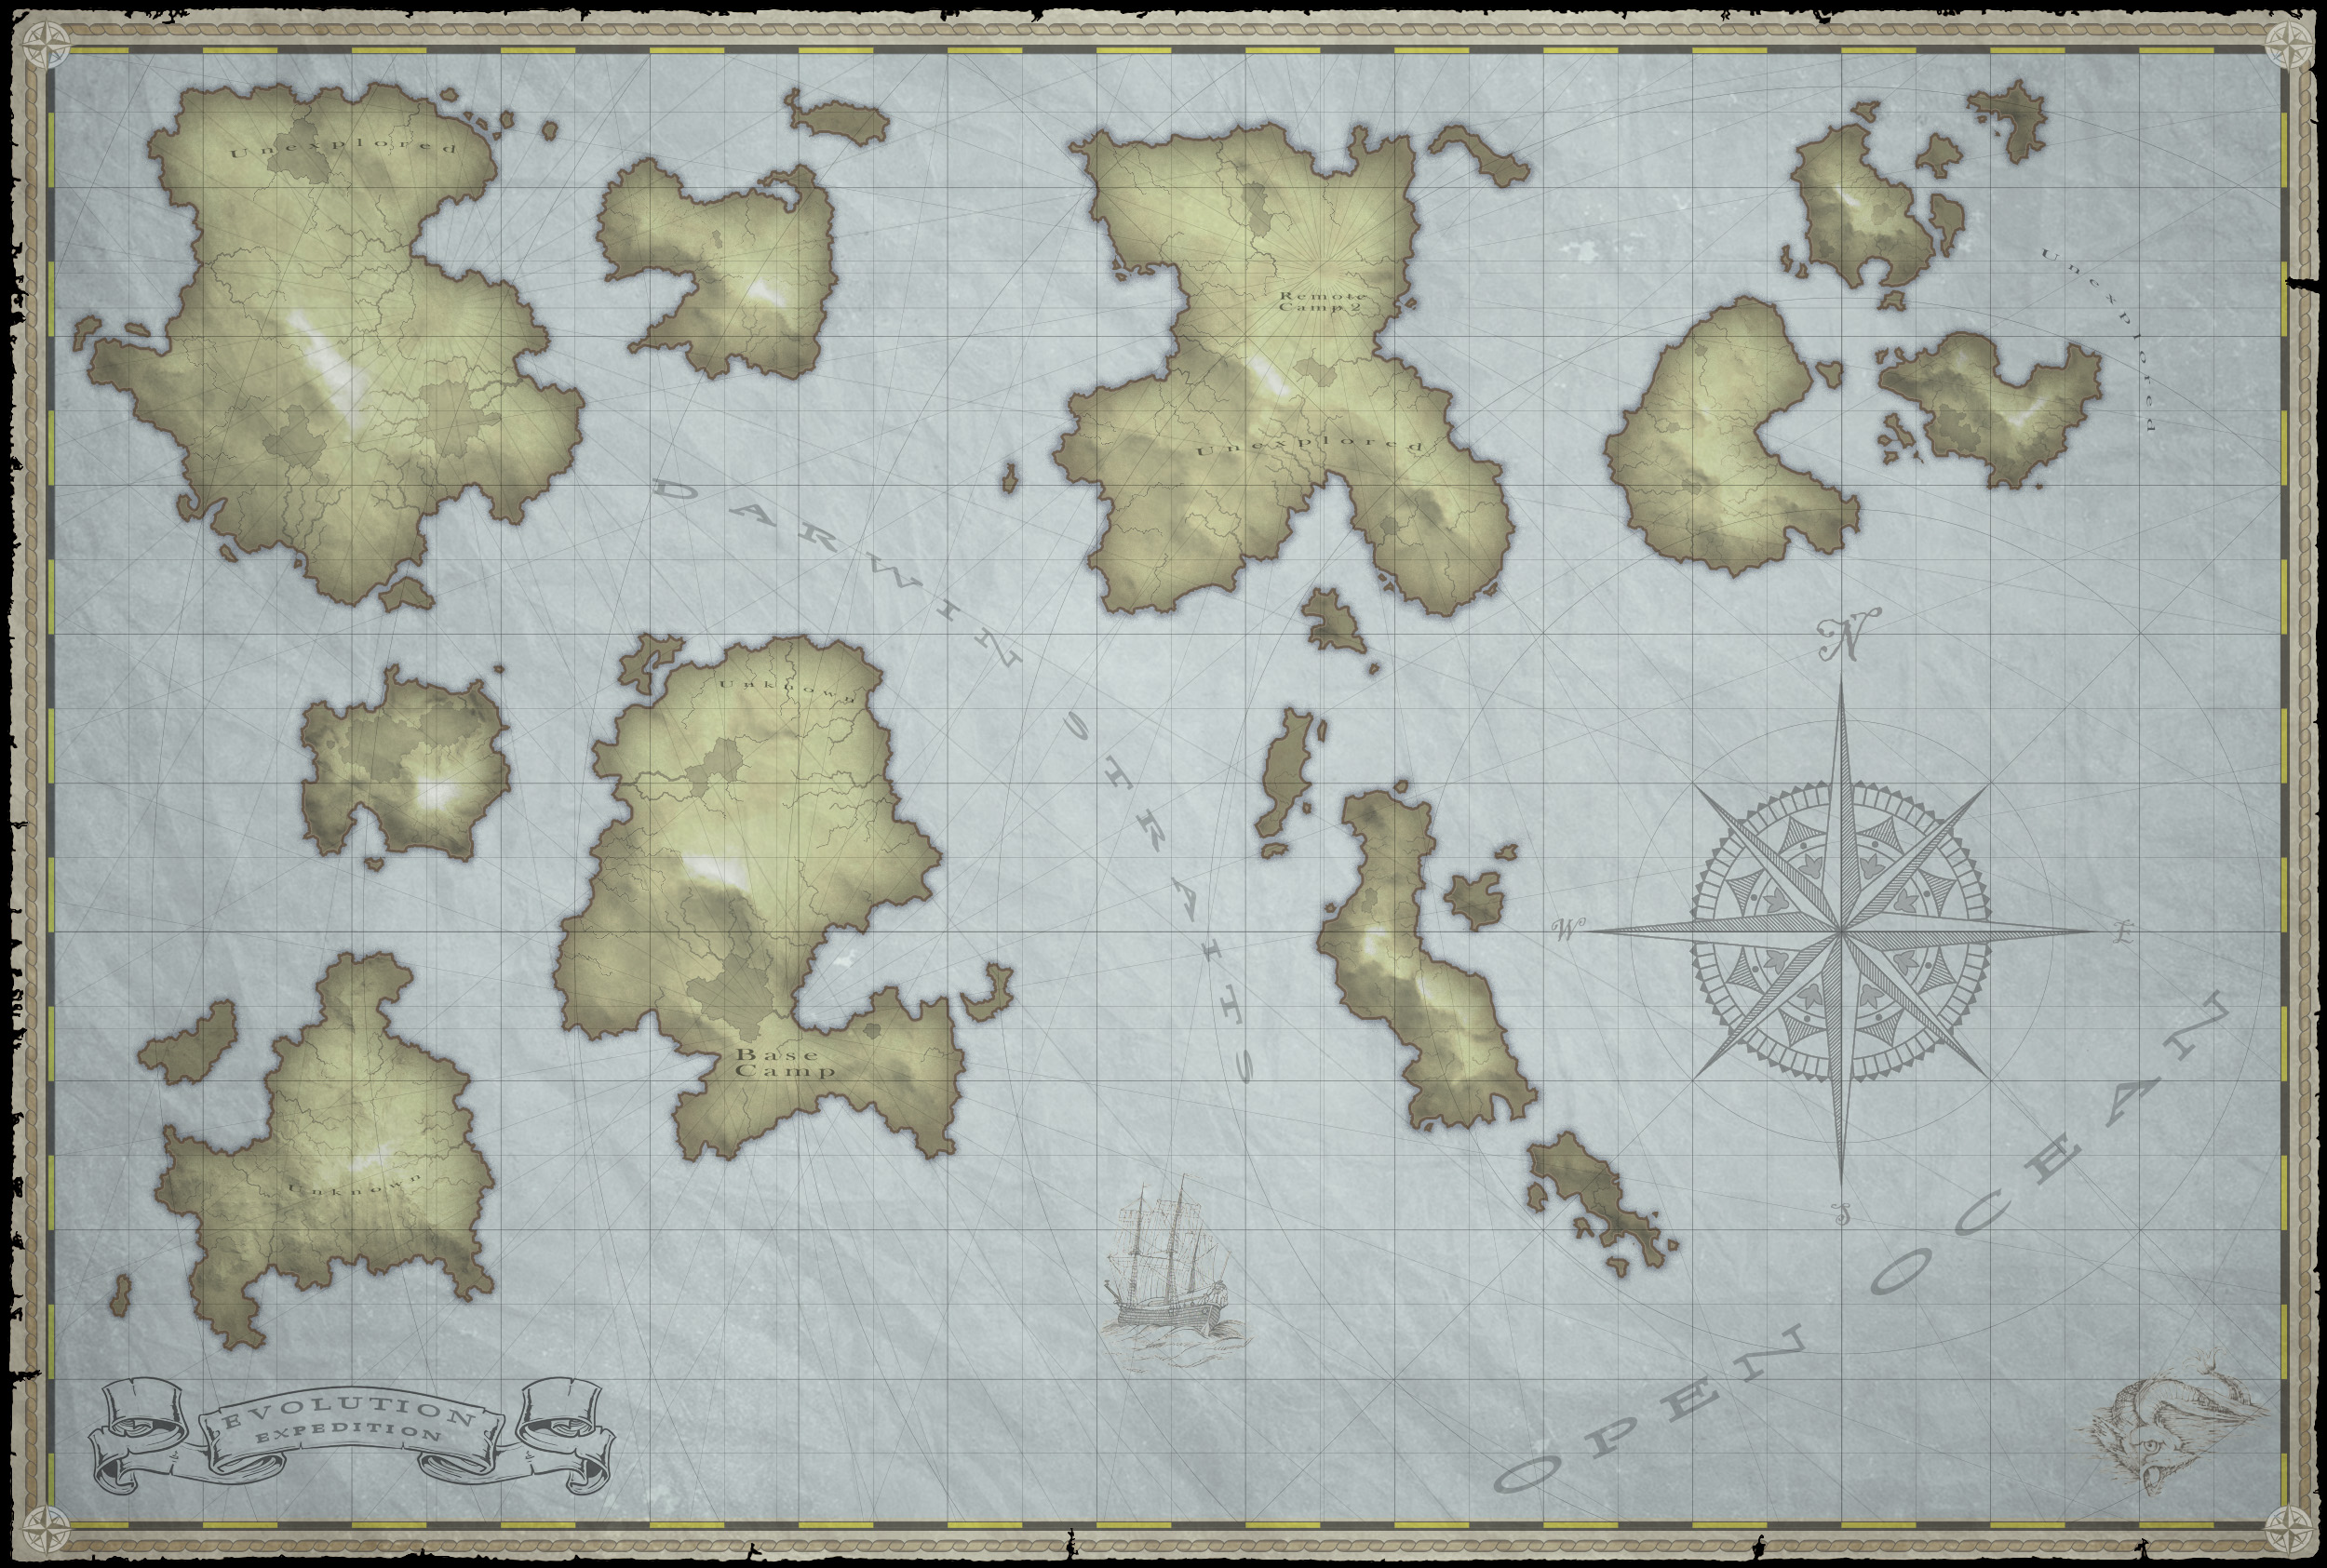 This Was A Project Where I Needed To Generate A Random, But Realistic Old  World Style Map. I Was Looking For A Somewhat Procedural Way To Generate  Islands ...